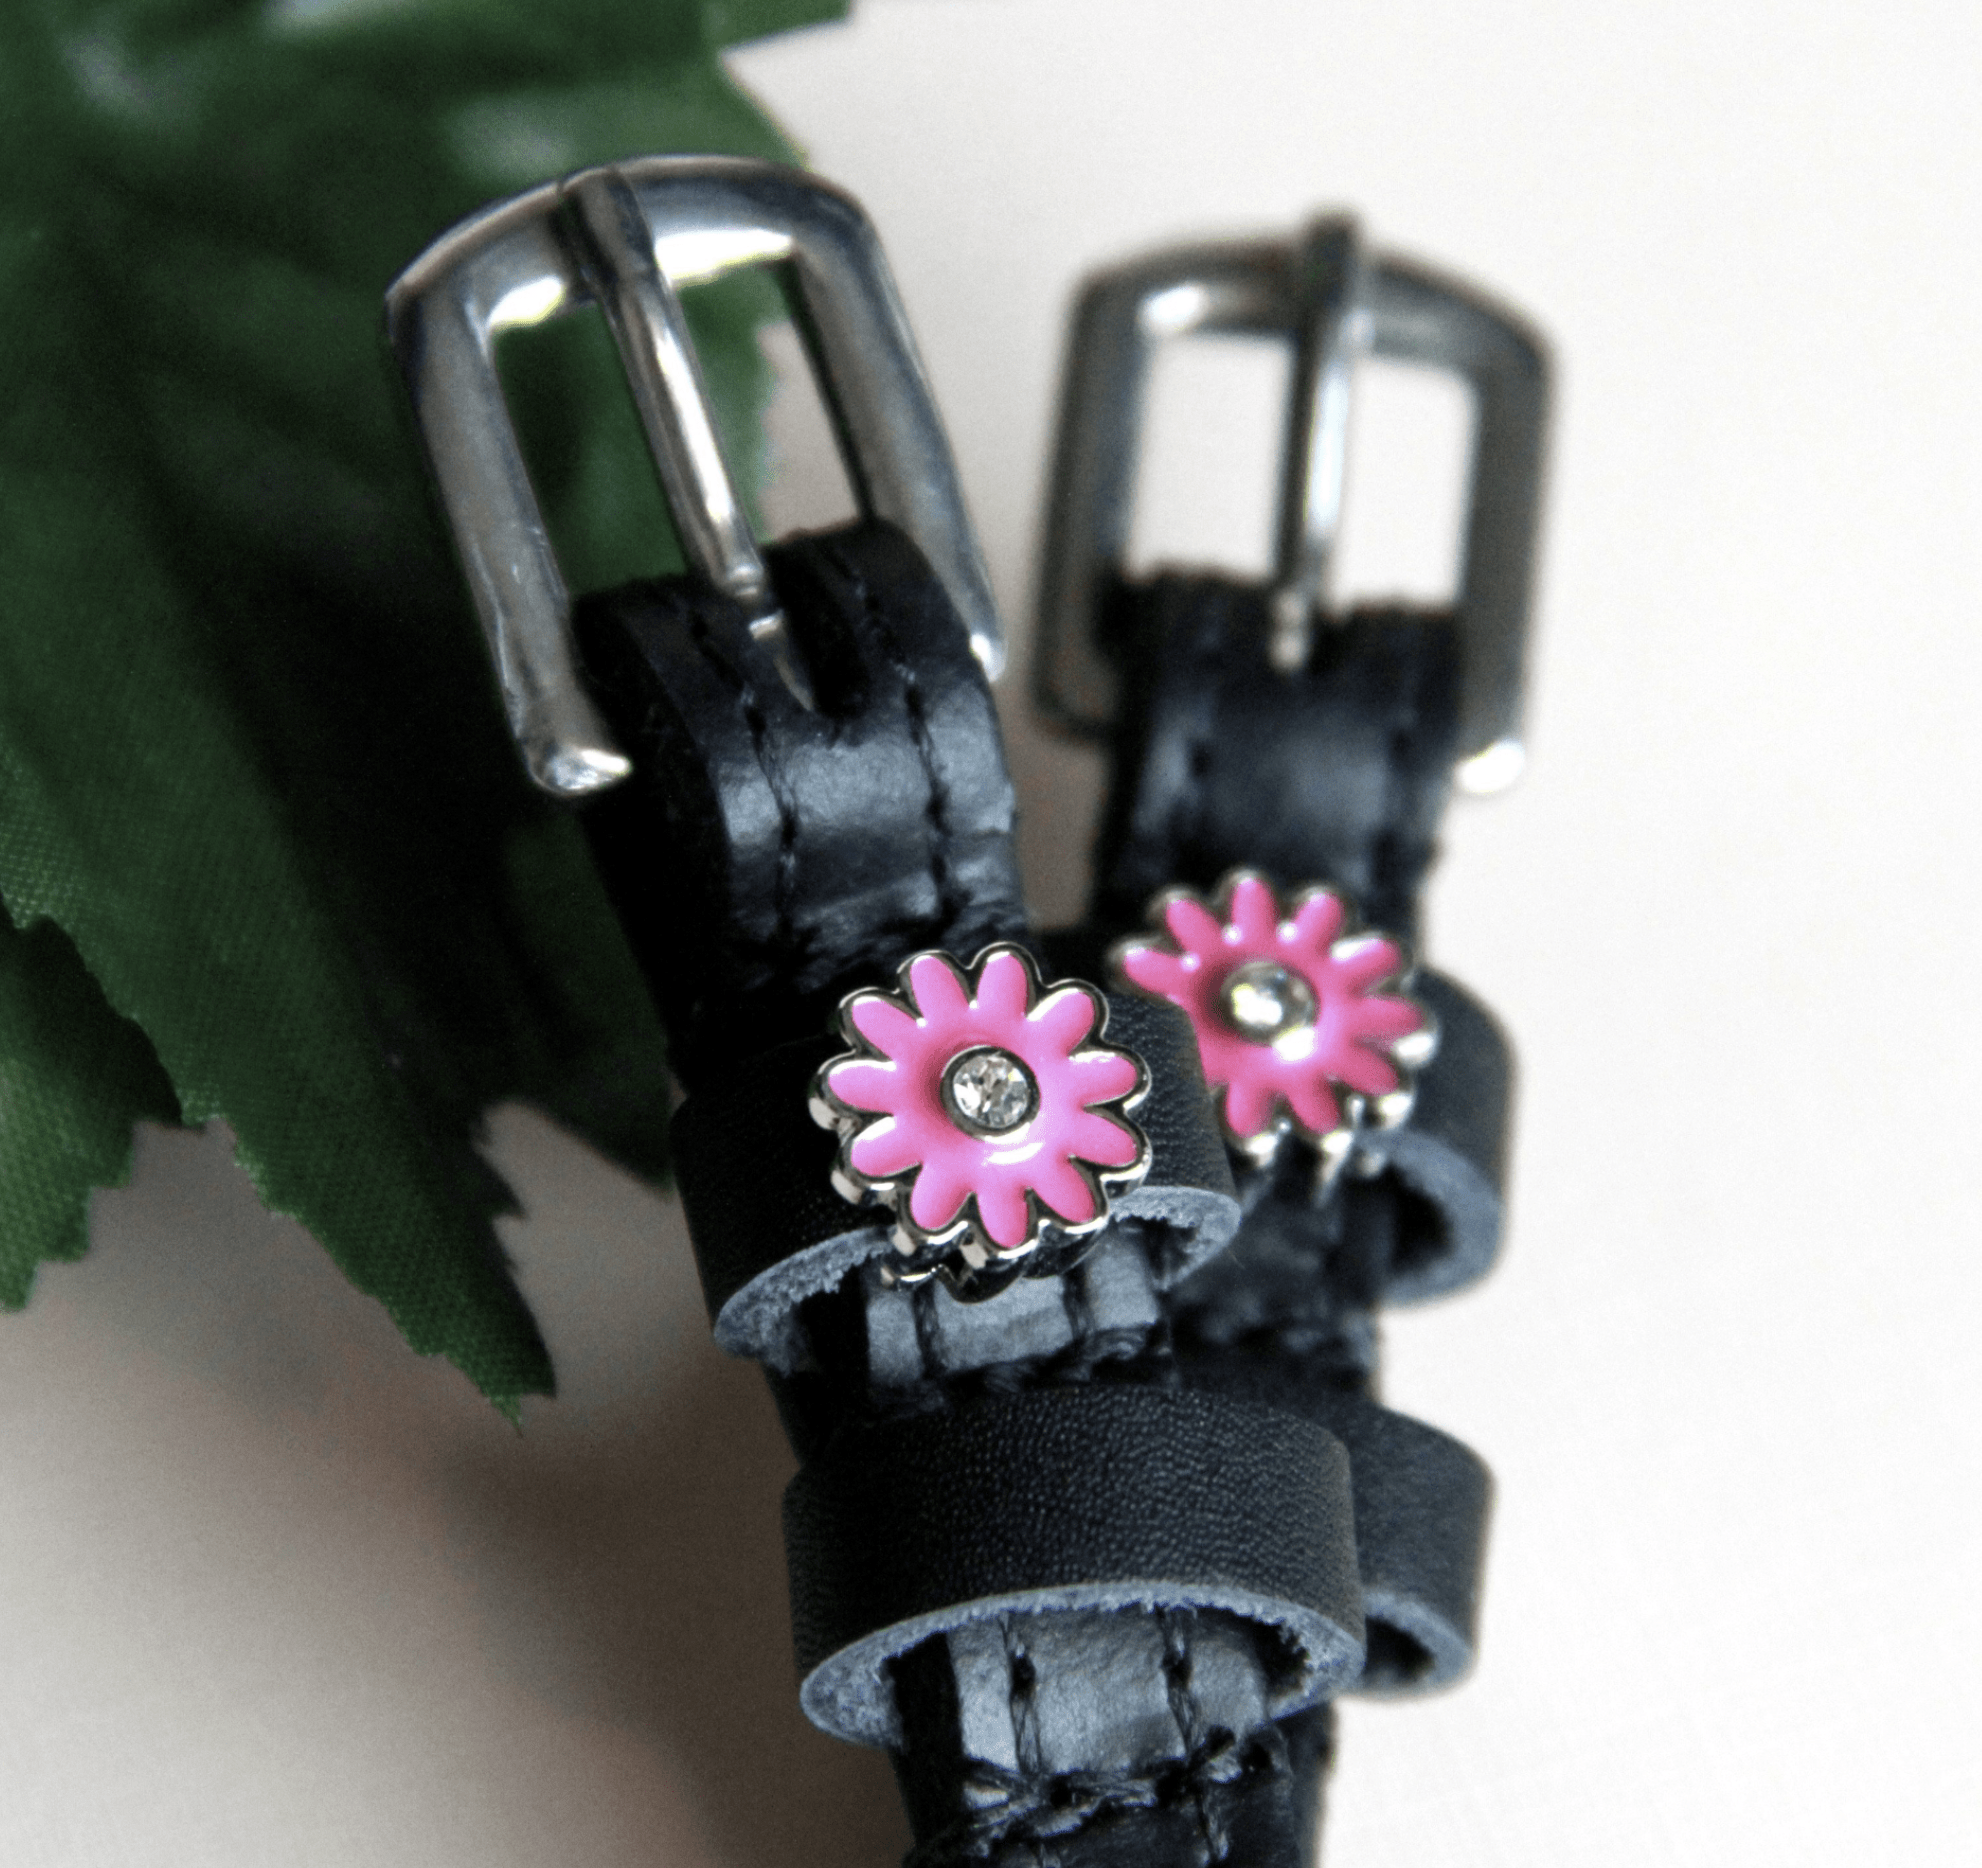 ManeJane Black Spur Straps Pink Flowers Spur Straps equestrian team apparel online tack store mobile tack store custom farm apparel custom show stable clothing equestrian lifestyle horse show clothing riding clothes horses equestrian tack store